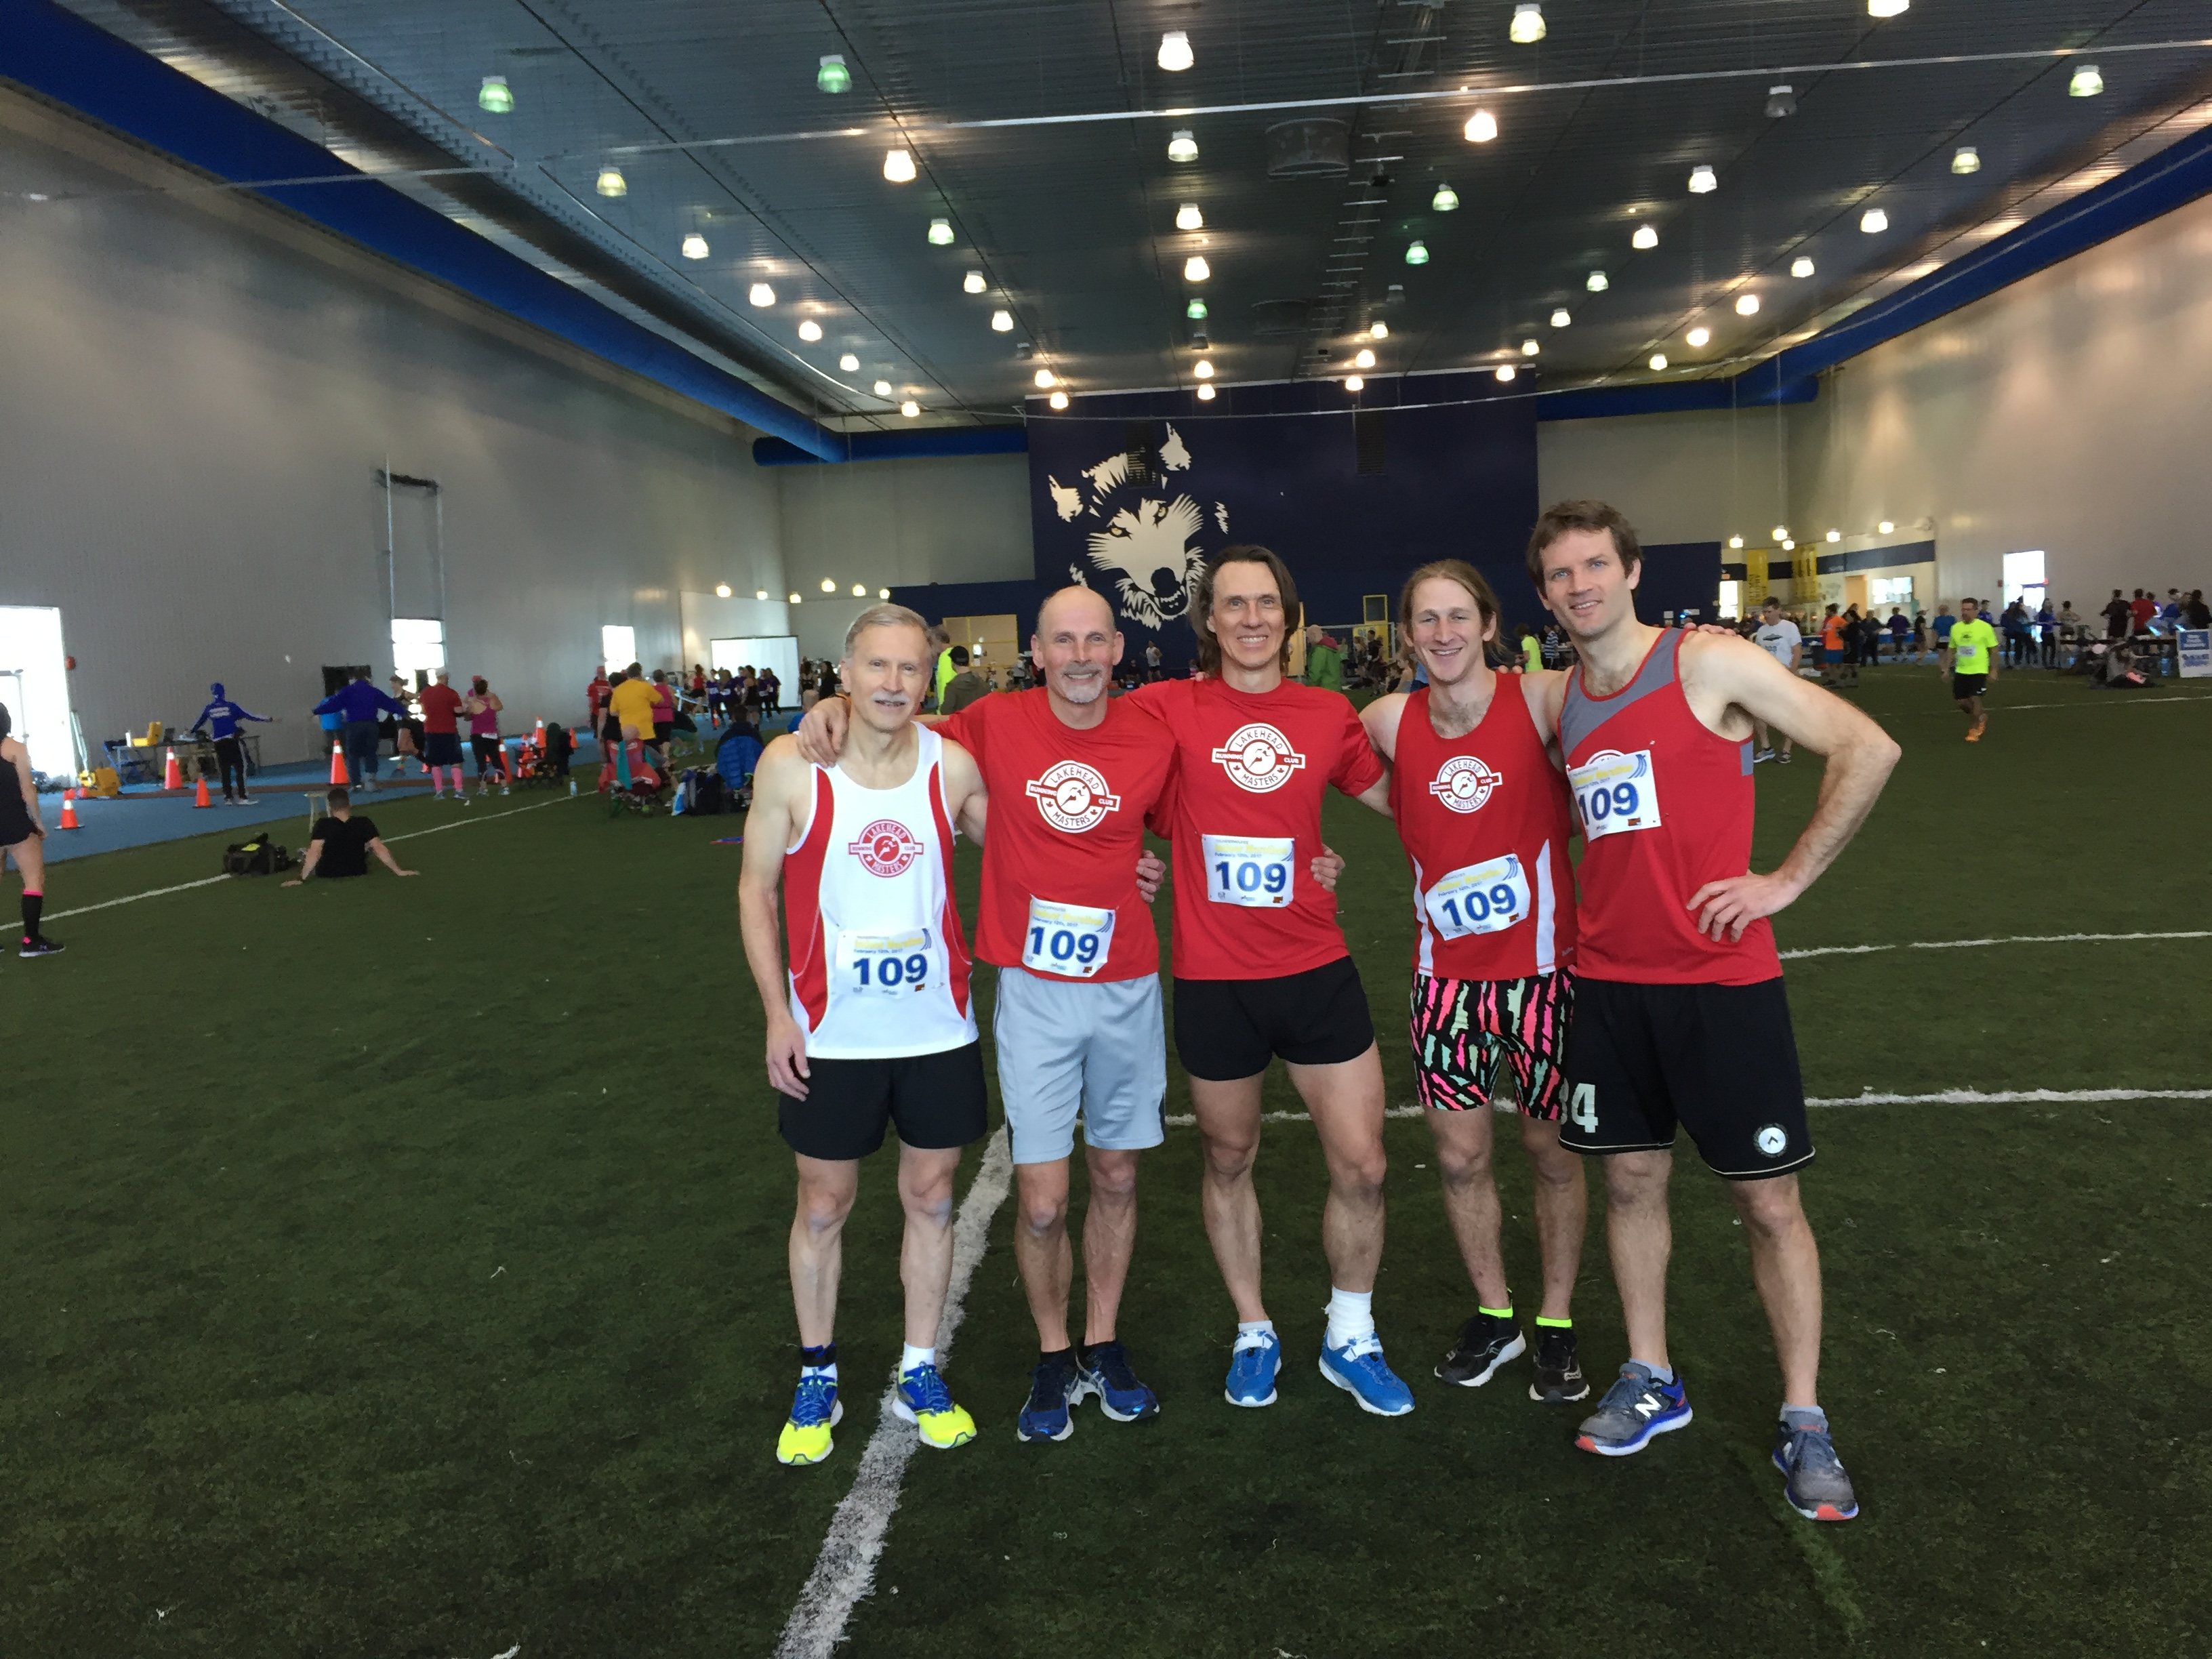 Lakehead Masters 1st place team, Thunderwolves Indoor Marathon, 2017